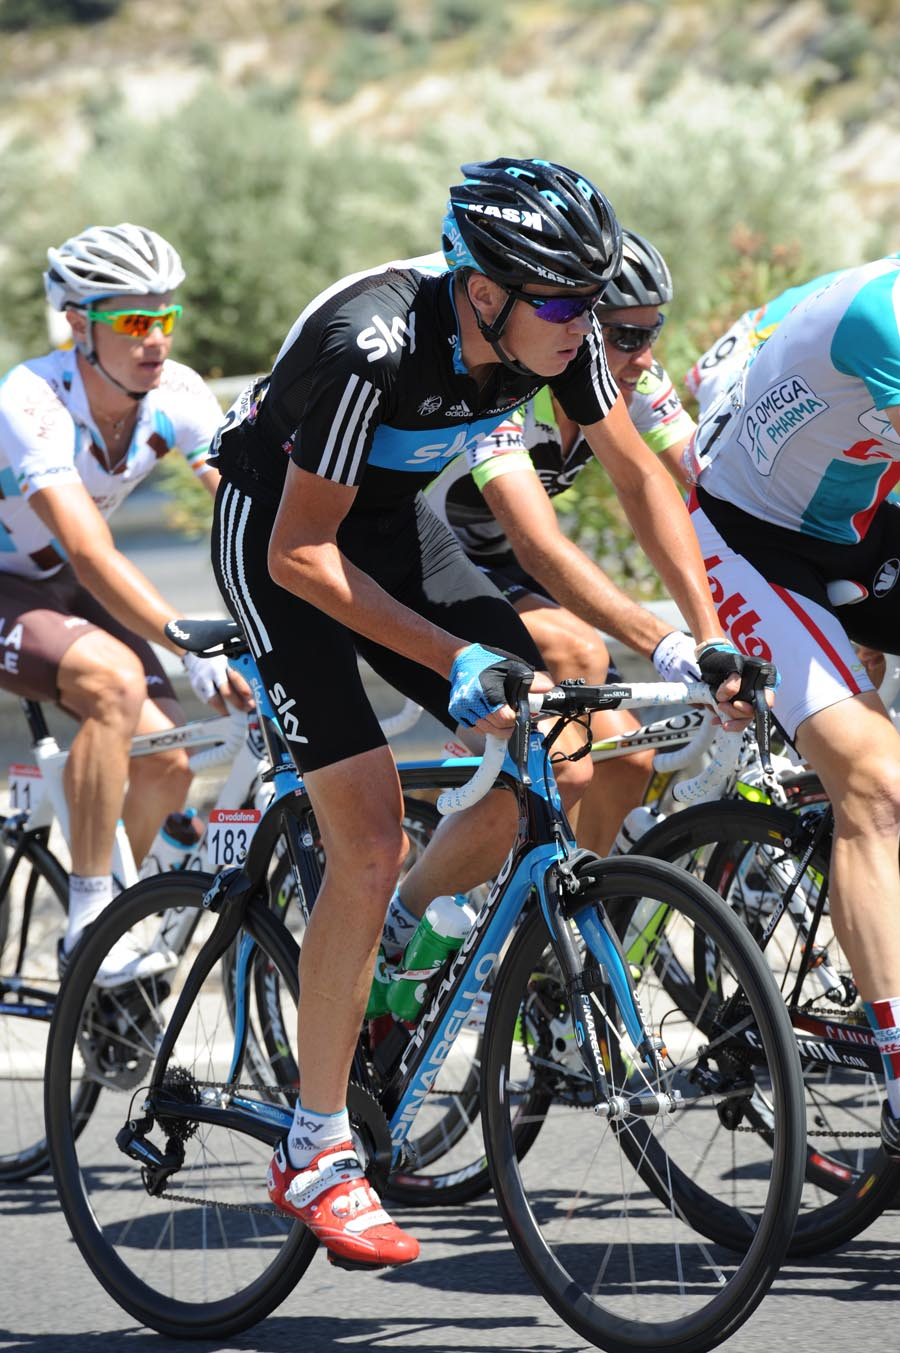 Chris Froome, Vuelta a Espana 2011, stage five